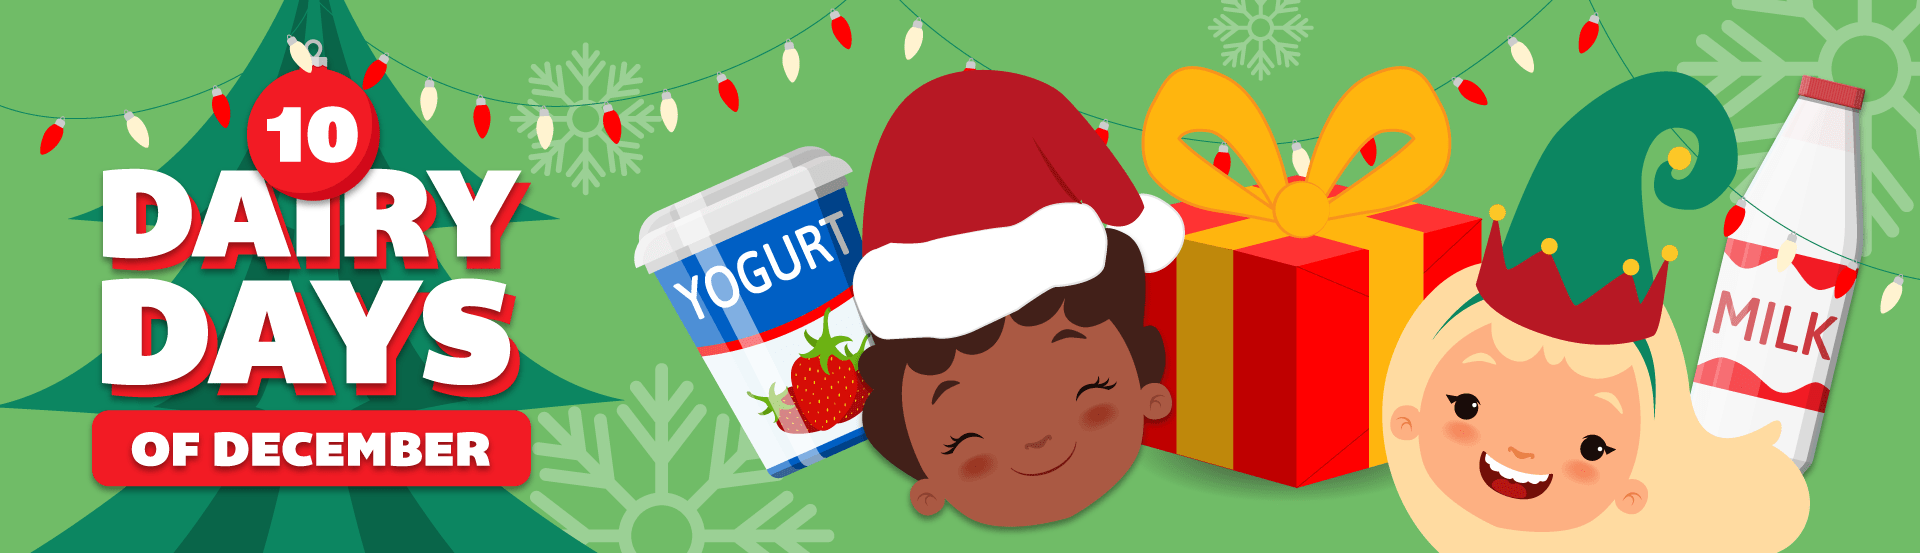 10 Days or Dairy text over a Christmas tree illustration, two children in holiday hats with a gift between, yogurt and milk illustrations on either side